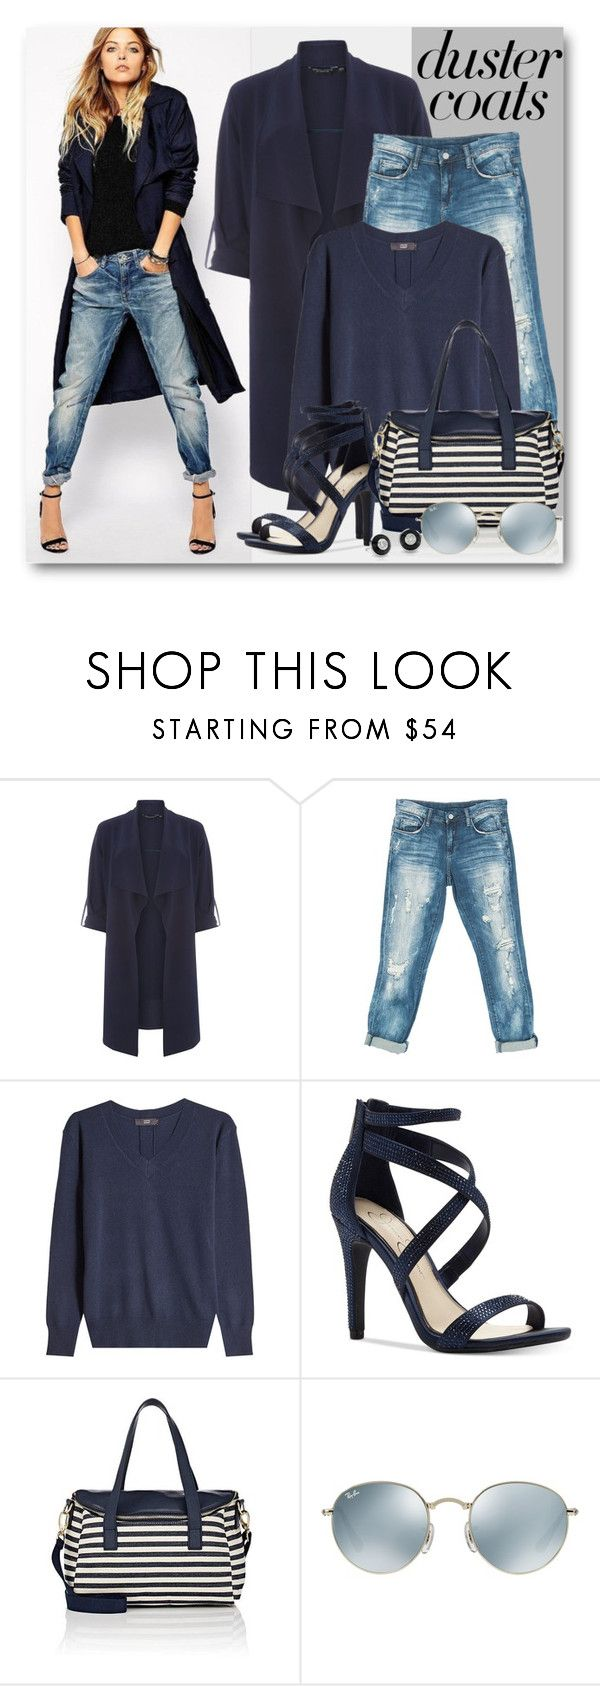 """""""Long Layers: Waterfall Duster Coat"""" by brendariley-1 ❤ liked on Polyvore featuring Dorothy Perkins, Sans Souci, Steffen Schraut, Jessica Simpson, Barneys New York, Ray-Ban and DusterCoat"""